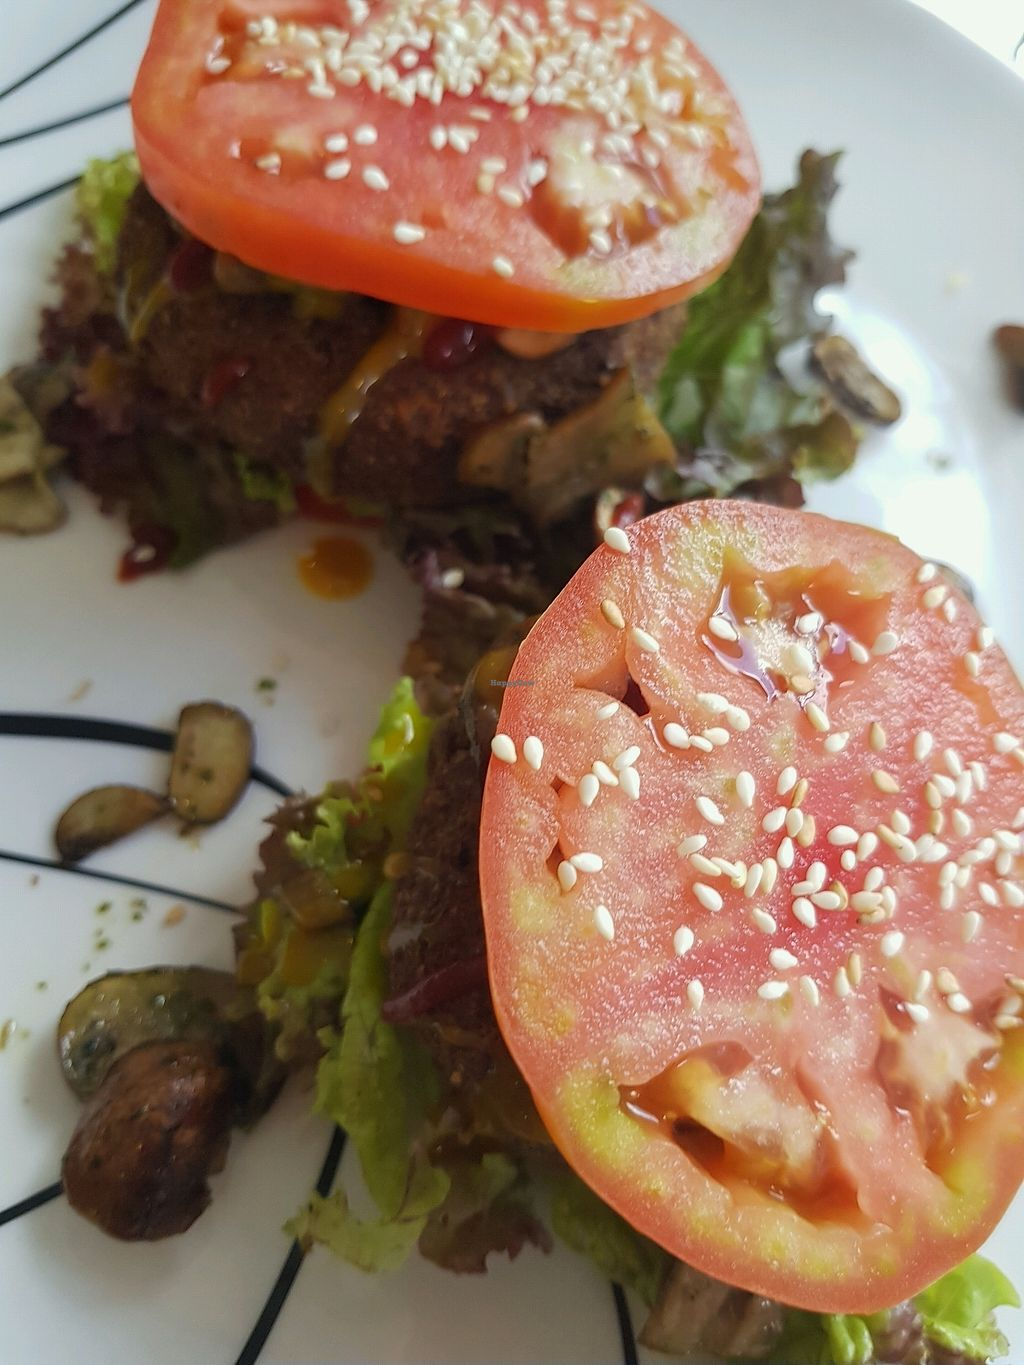 """Photo of Purolove Vegan Gourmet  by <a href=""""/members/profile/Cynthiab"""">Cynthiab</a> <br/>the burger <br/> February 4, 2018  - <a href='/contact/abuse/image/59863/354853'>Report</a>"""